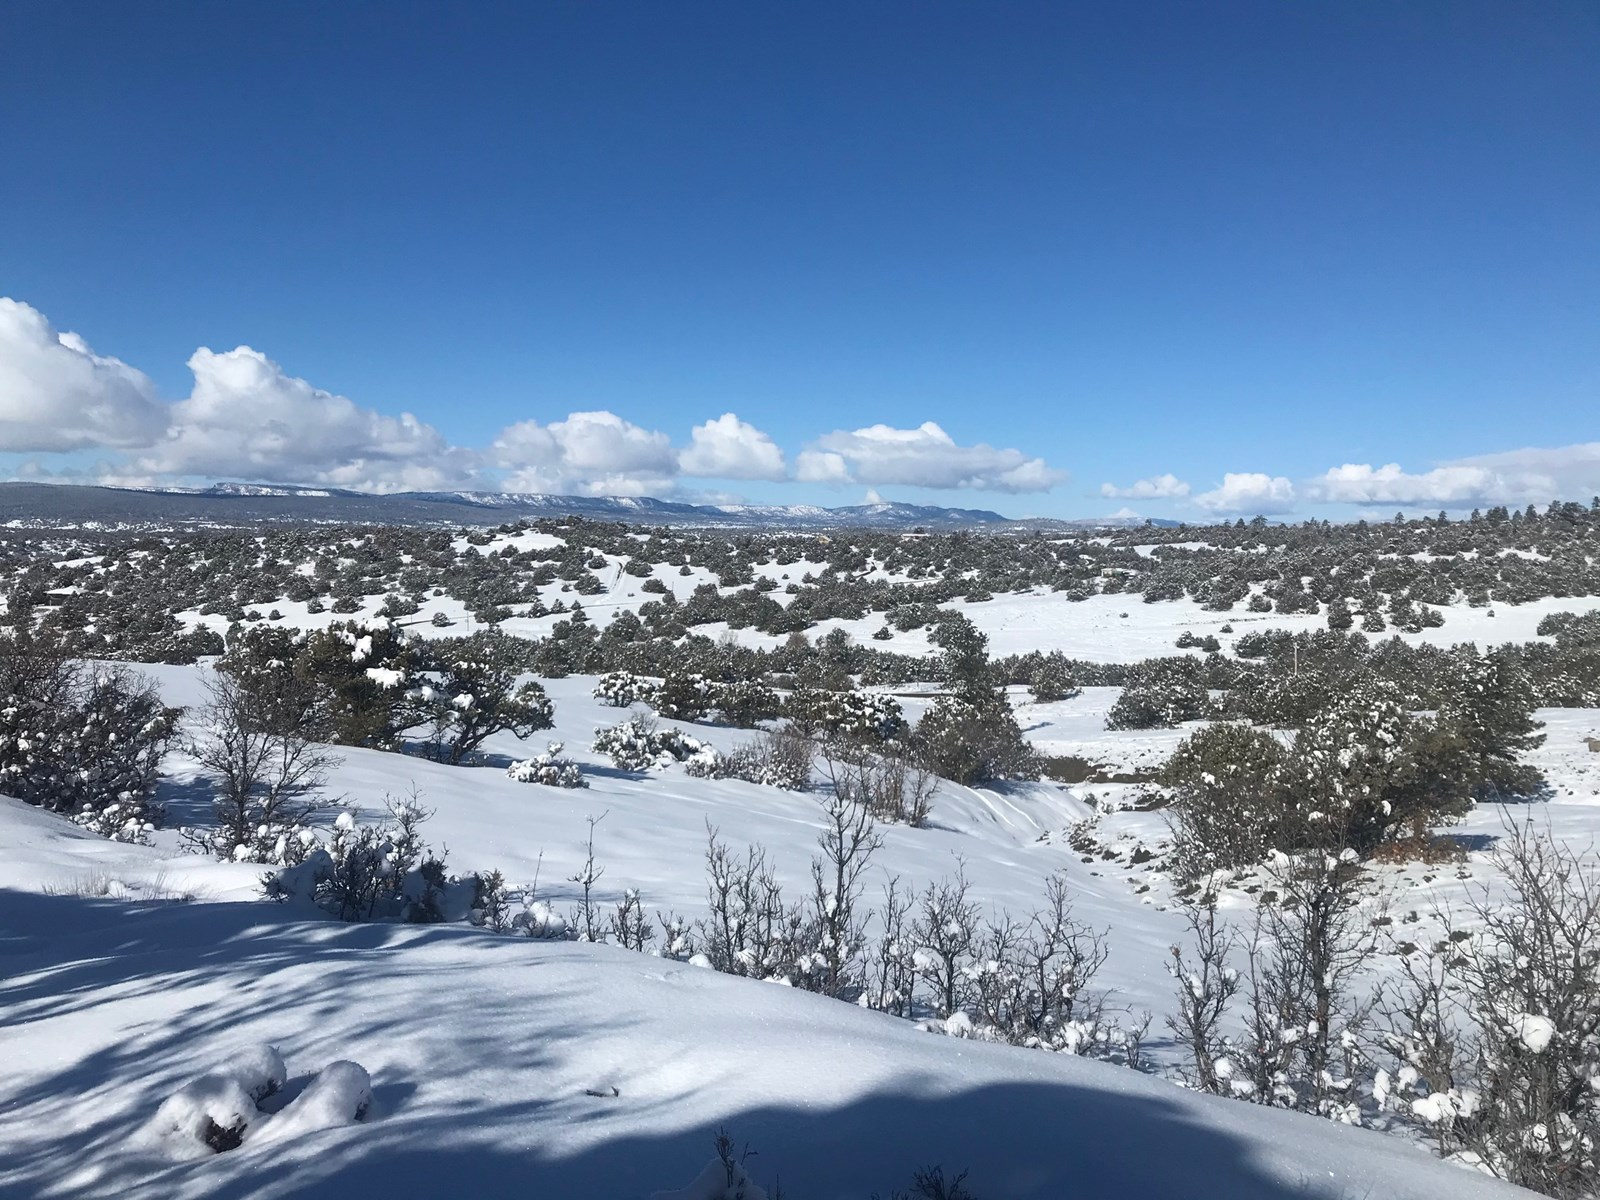 Land for Sale near Chama NM Mountain Property with Views